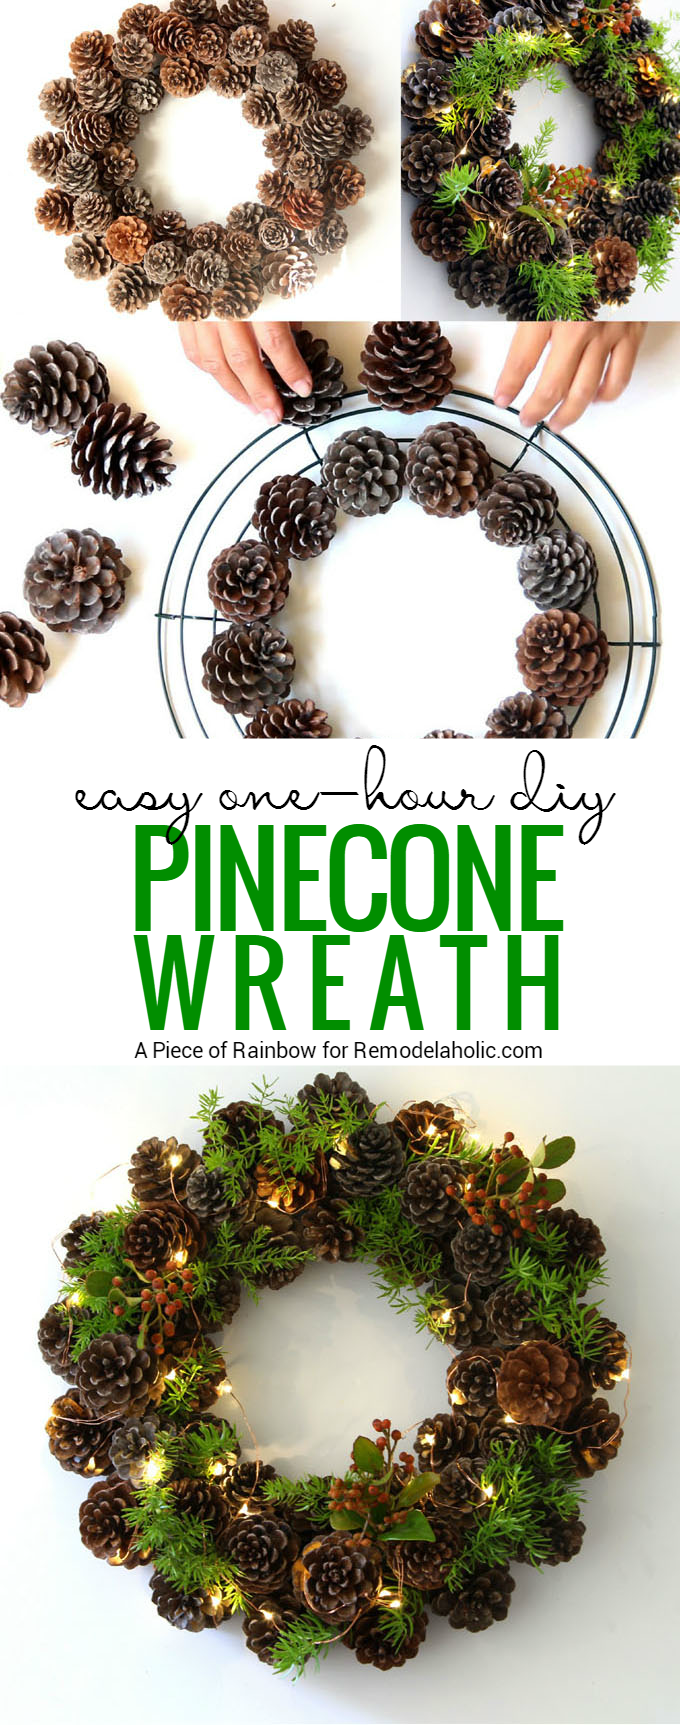 If you've got an hour, you can make this beautiful winter pine cone wreath! Gather some pinecones and a few sprigs of greenery and follow this tutorial from A Piece of Rainbow on Remodelaholic.com #wreaths